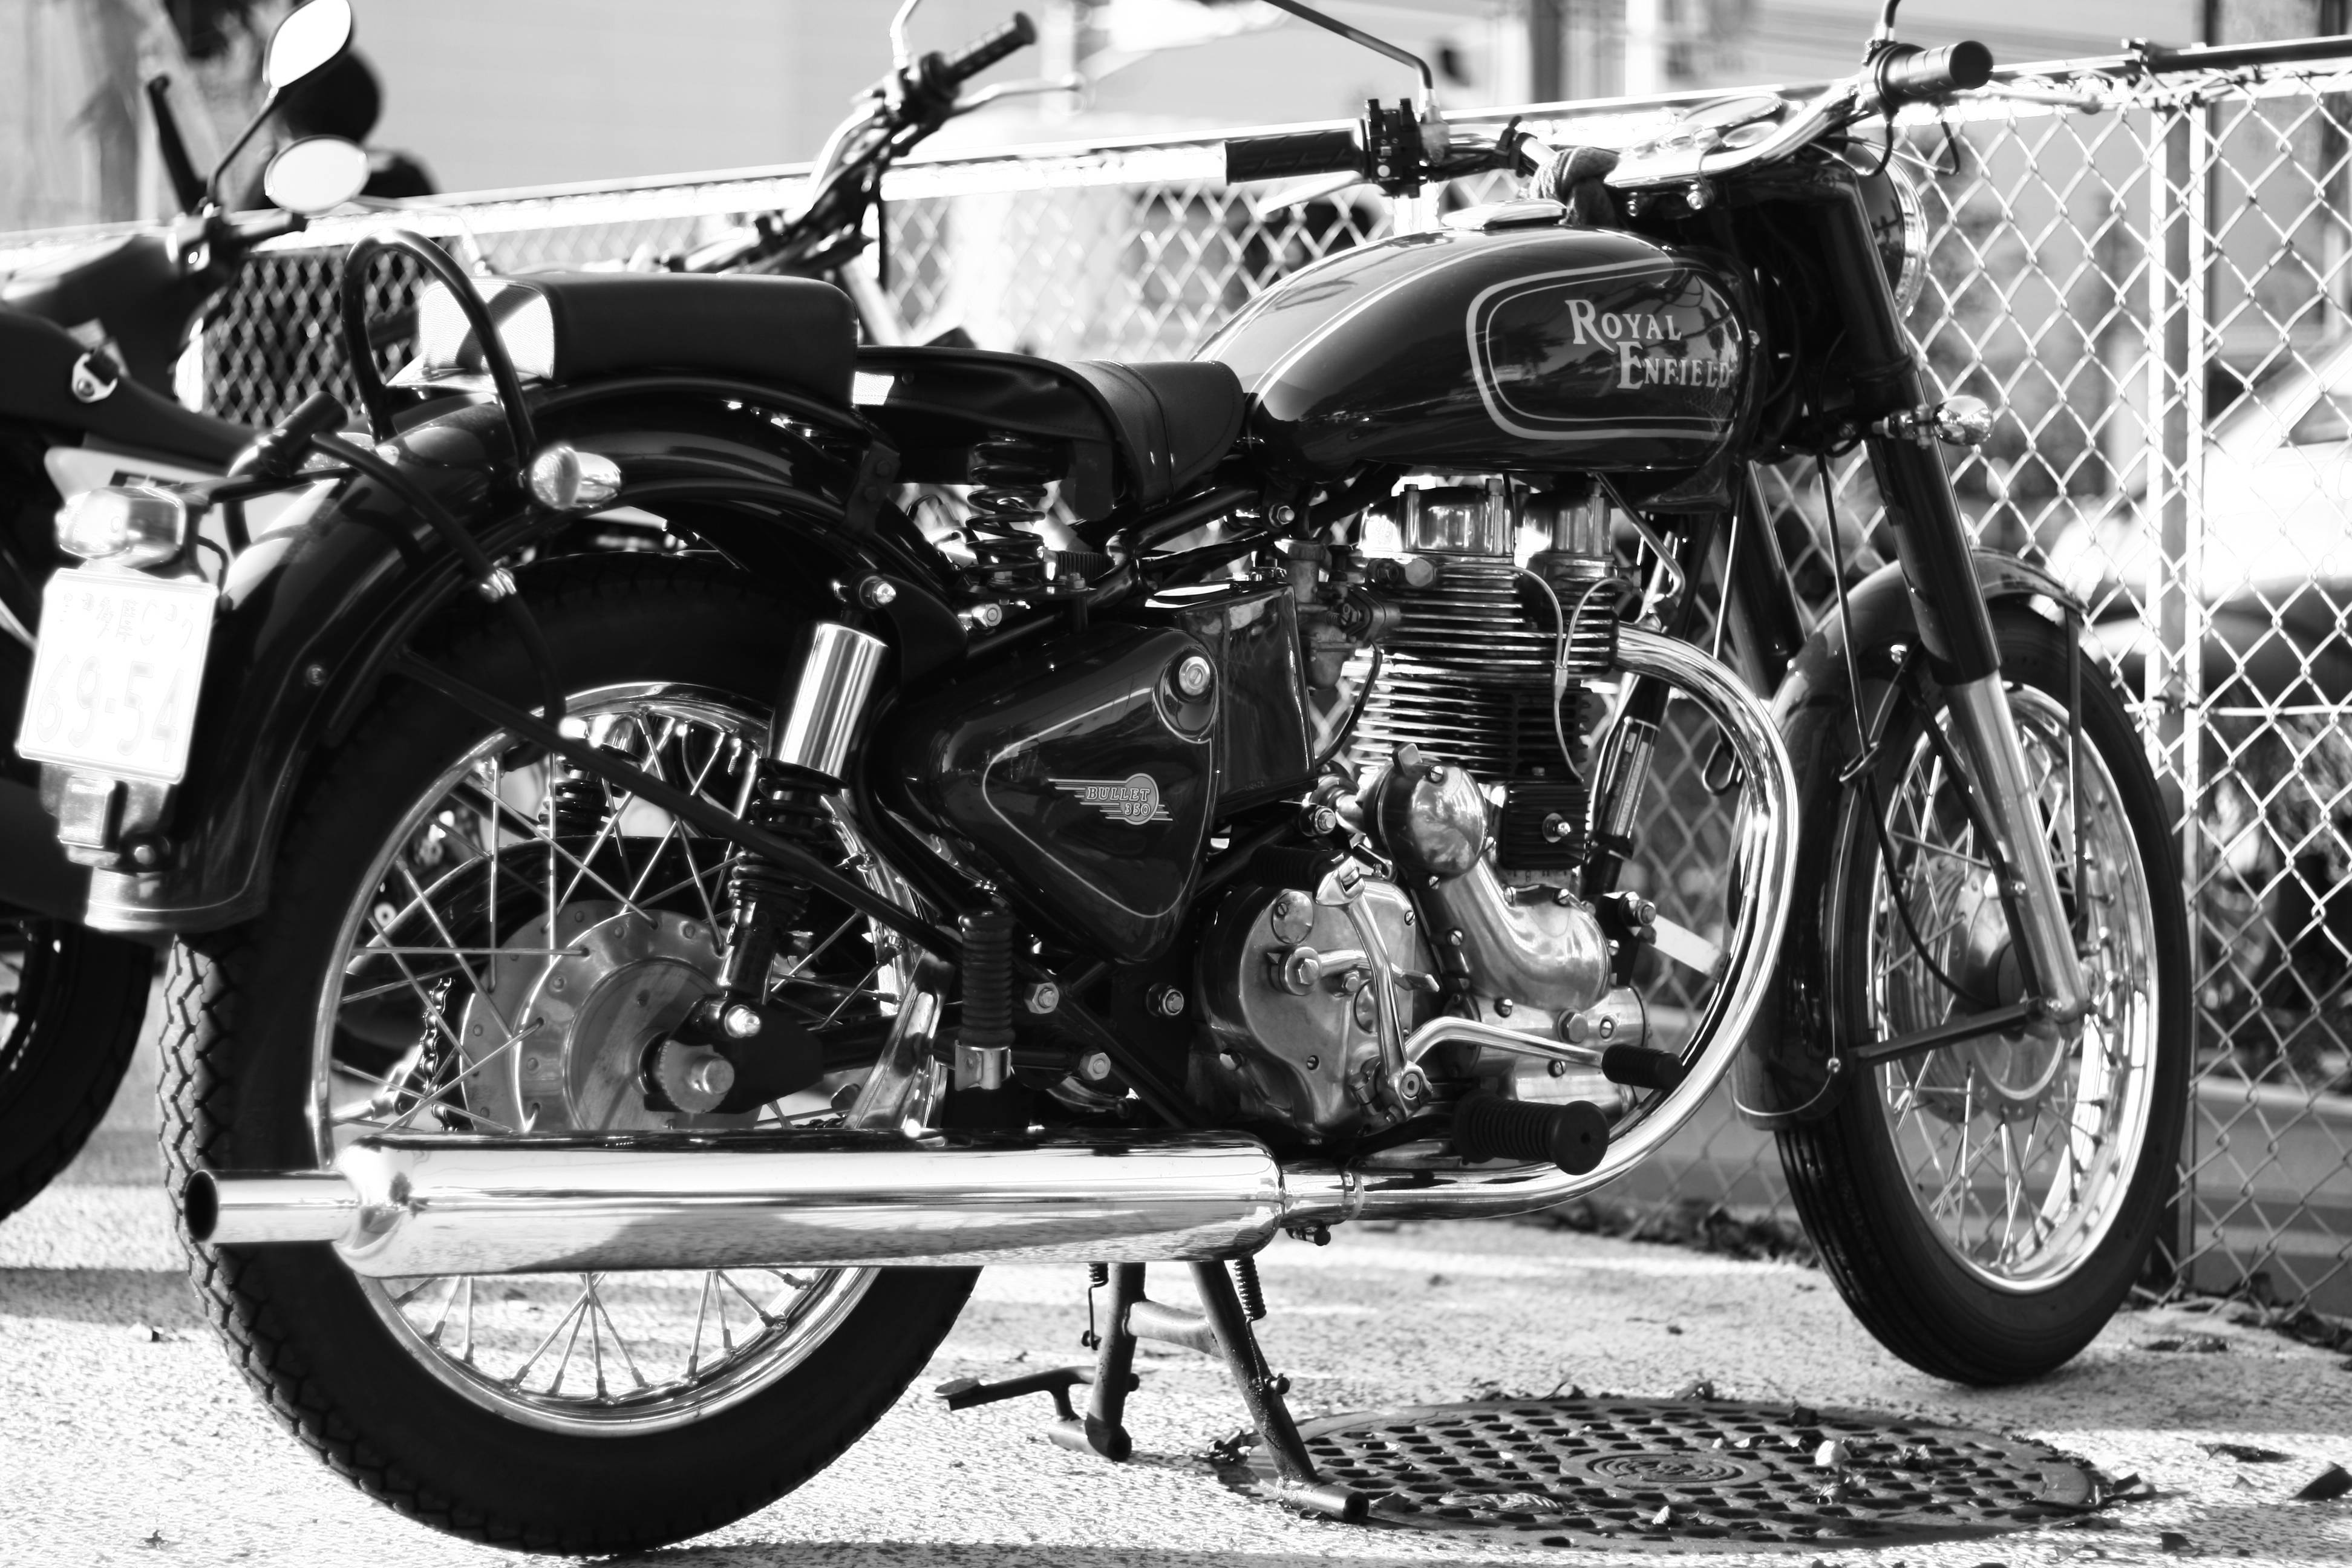 40 Royal Enfield Wallpapers Desktop Hd On Wallpapersafari